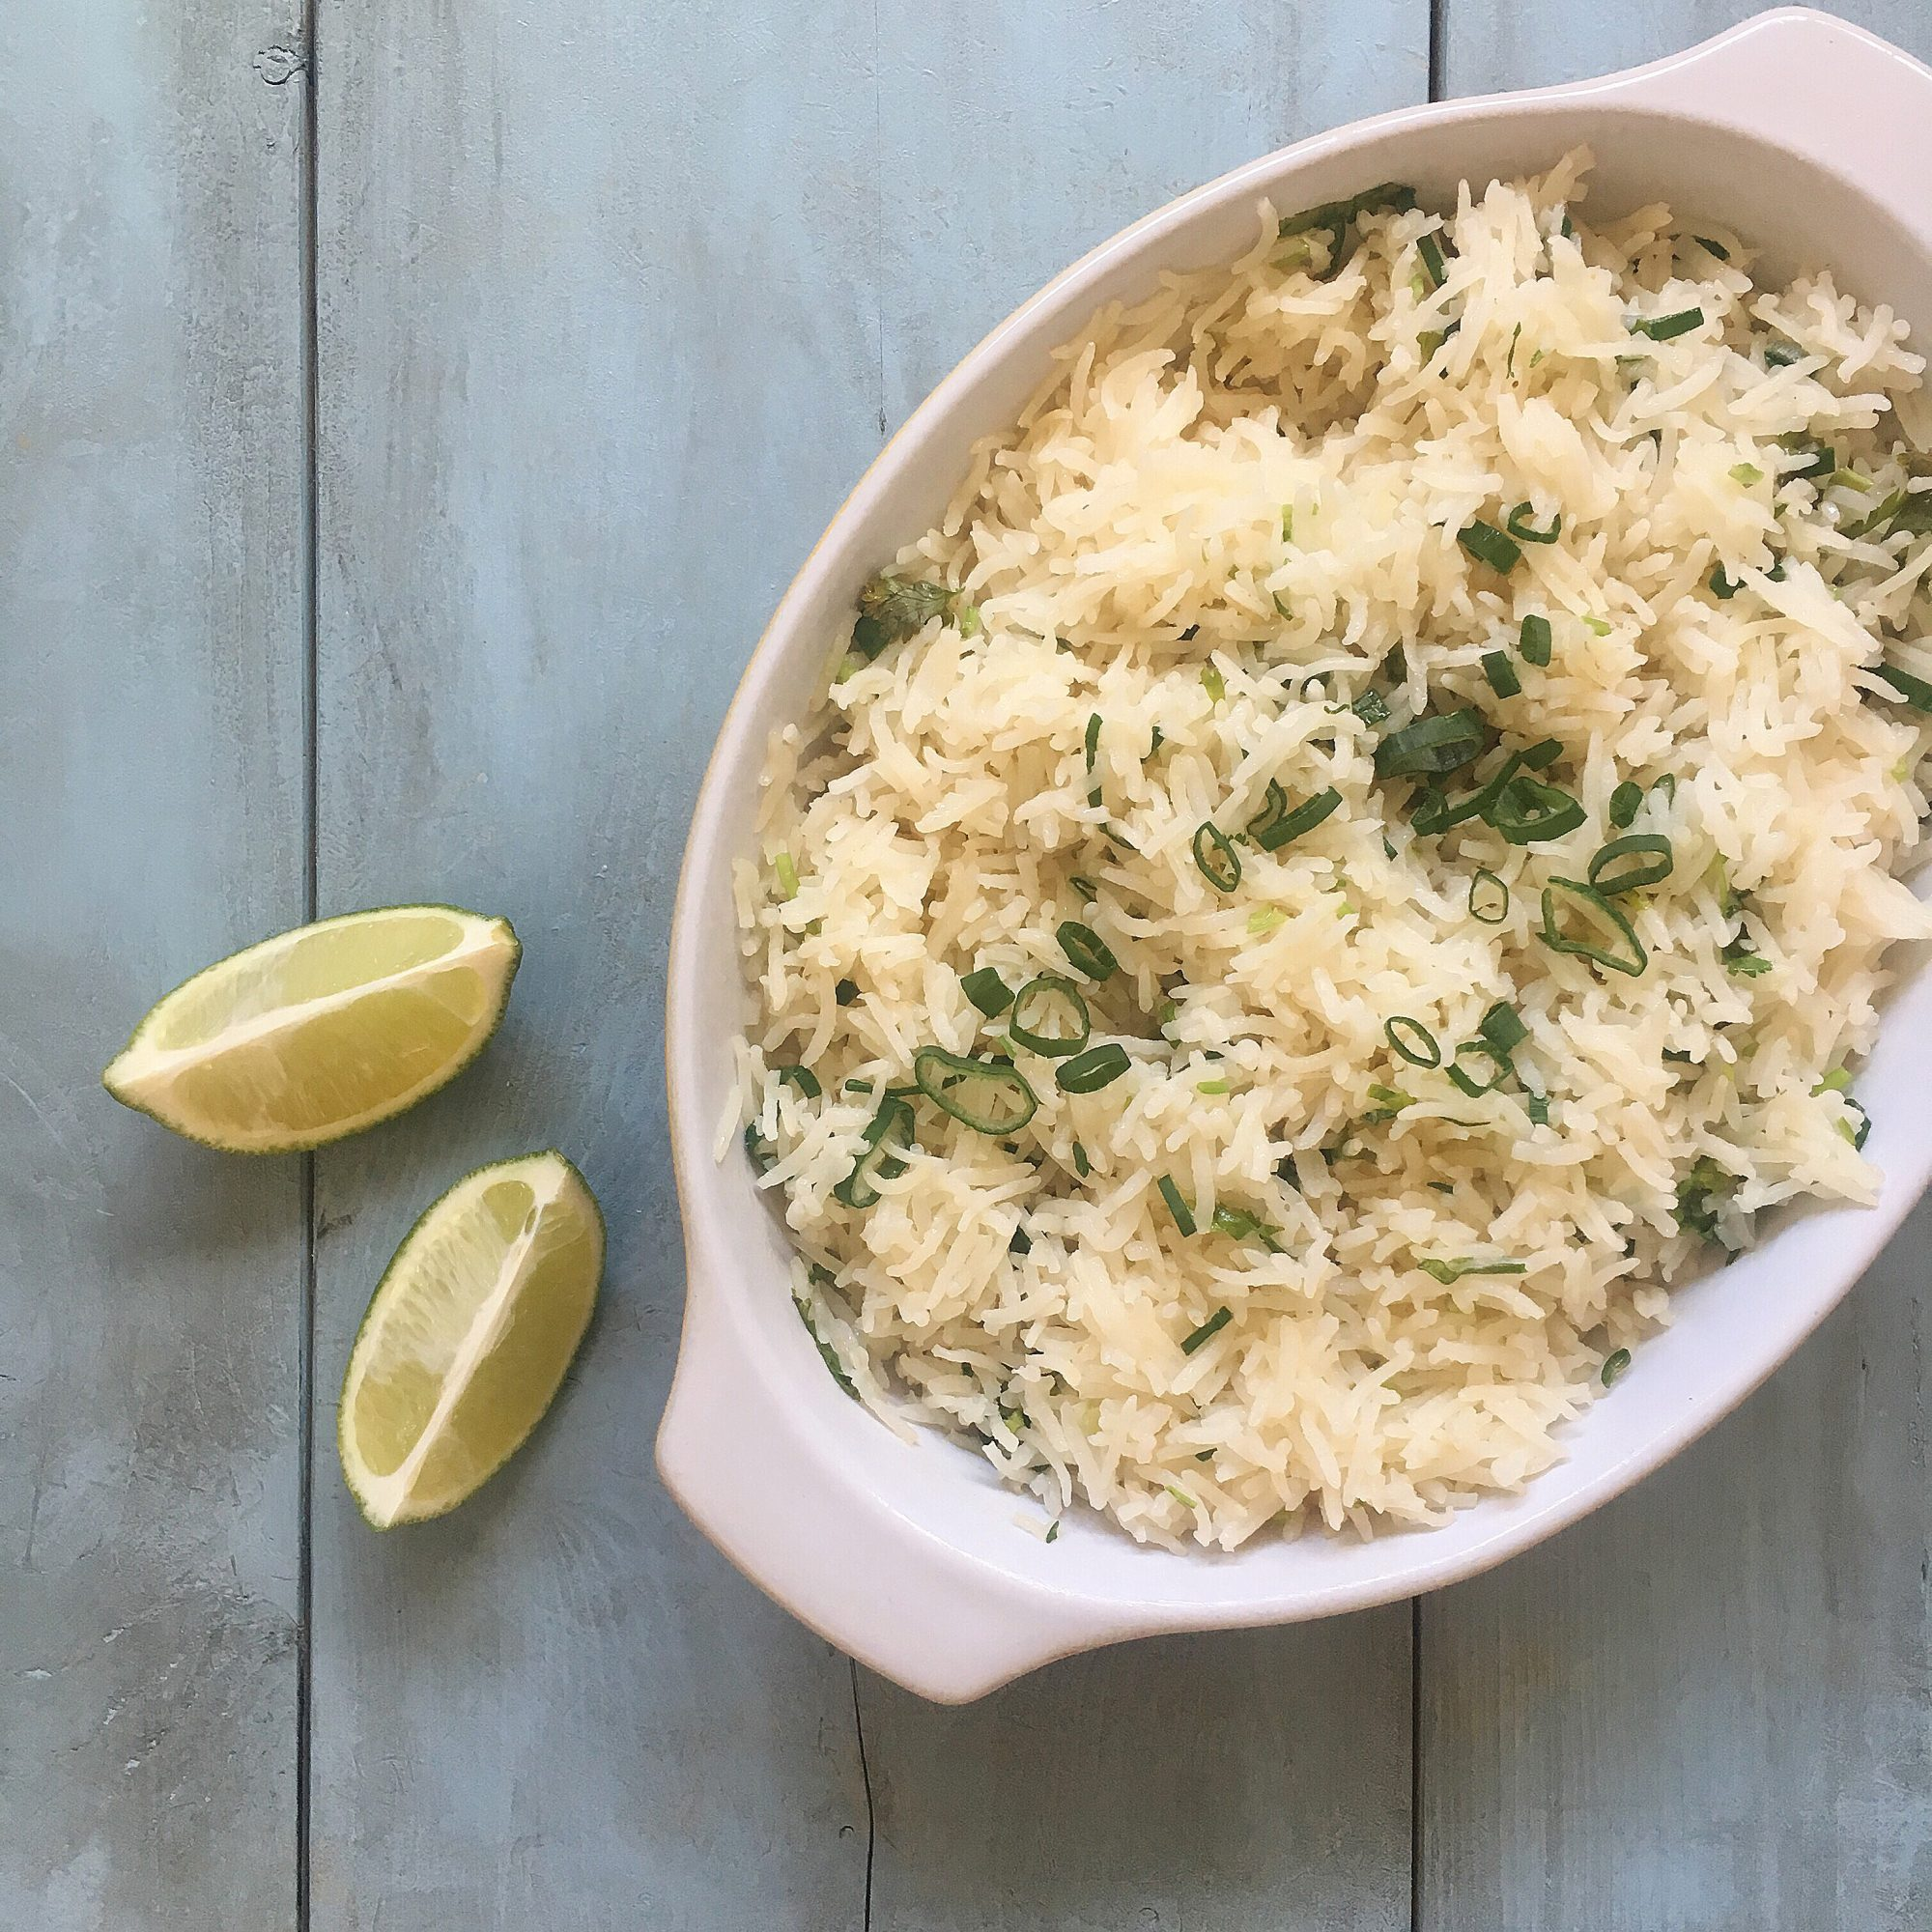 """Rice is baked in coconut water in this foolproof rice side dish. Shredded carrots, green onions, cilantro, and lime juice are added just before serving. """"I really enjoyed this!"""" says home cook LauraF. """"I thought it was tasty and very easy to prepare. I'd baked rice in the oven before — it always comes out perfectly!"""""""